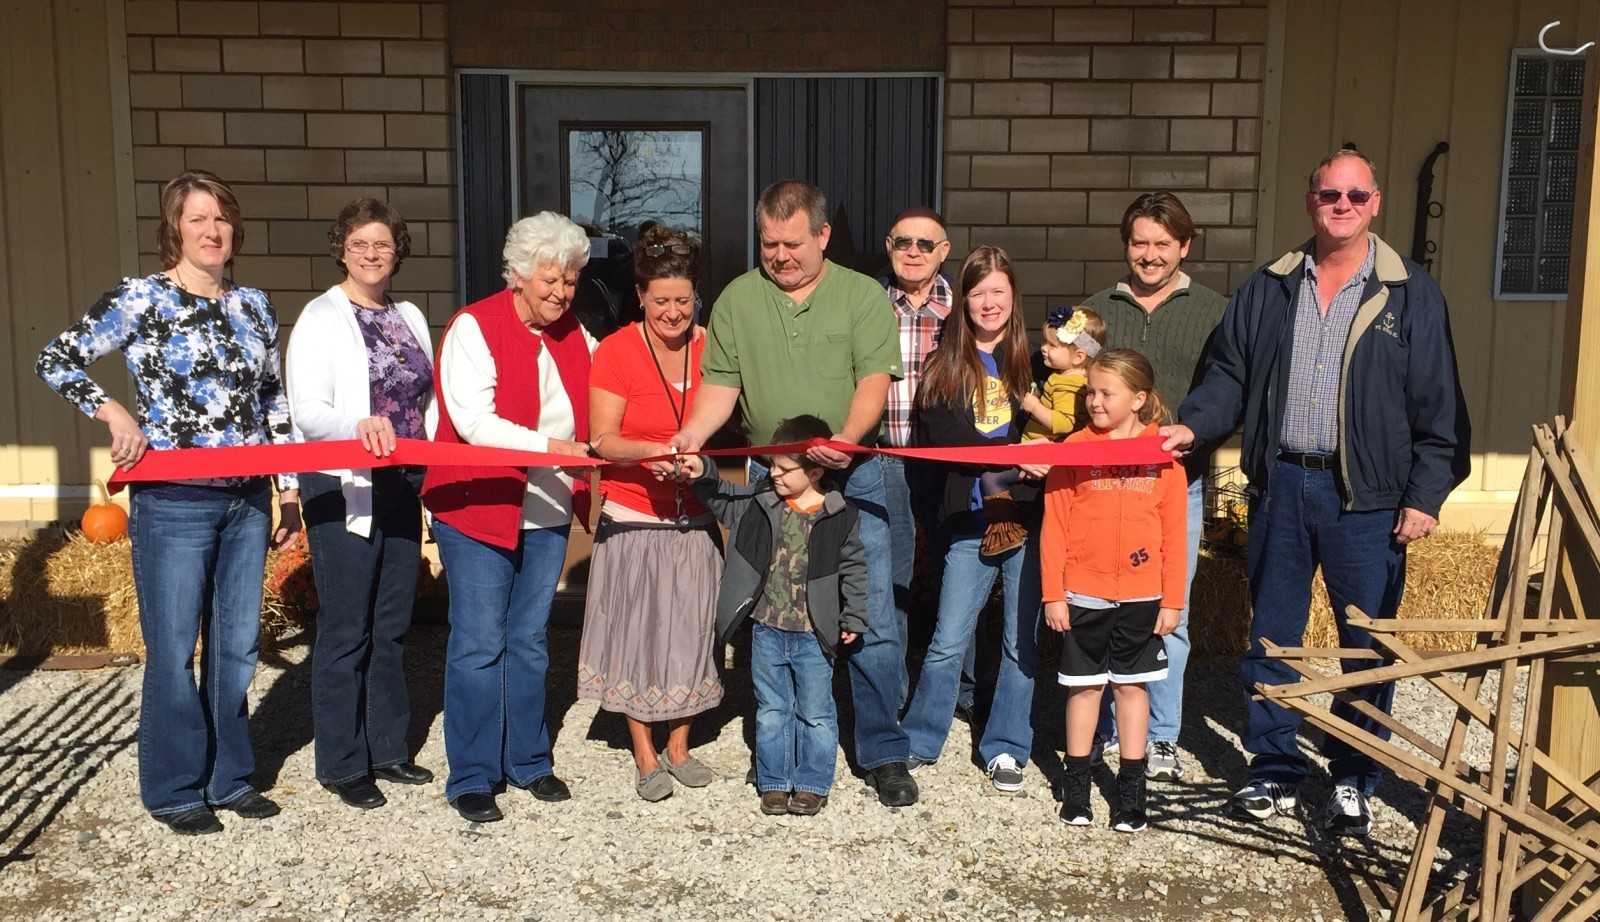 New business officially opens in Brownstown